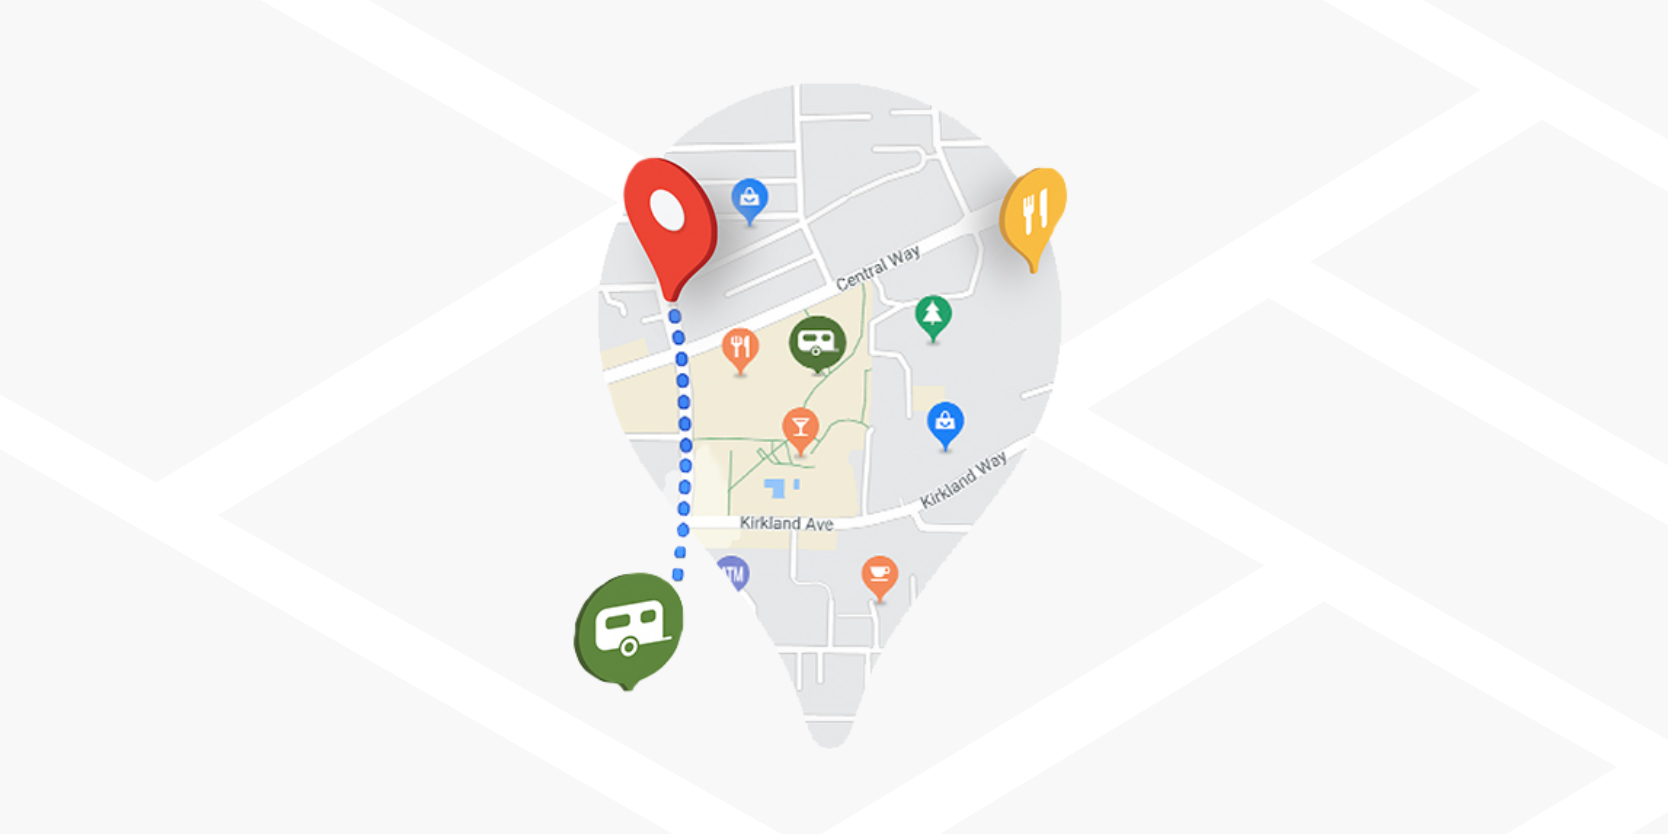 Google letting 3rd-party sites show reviews, images, and other 'Local Context' from Maps - RapidAPI